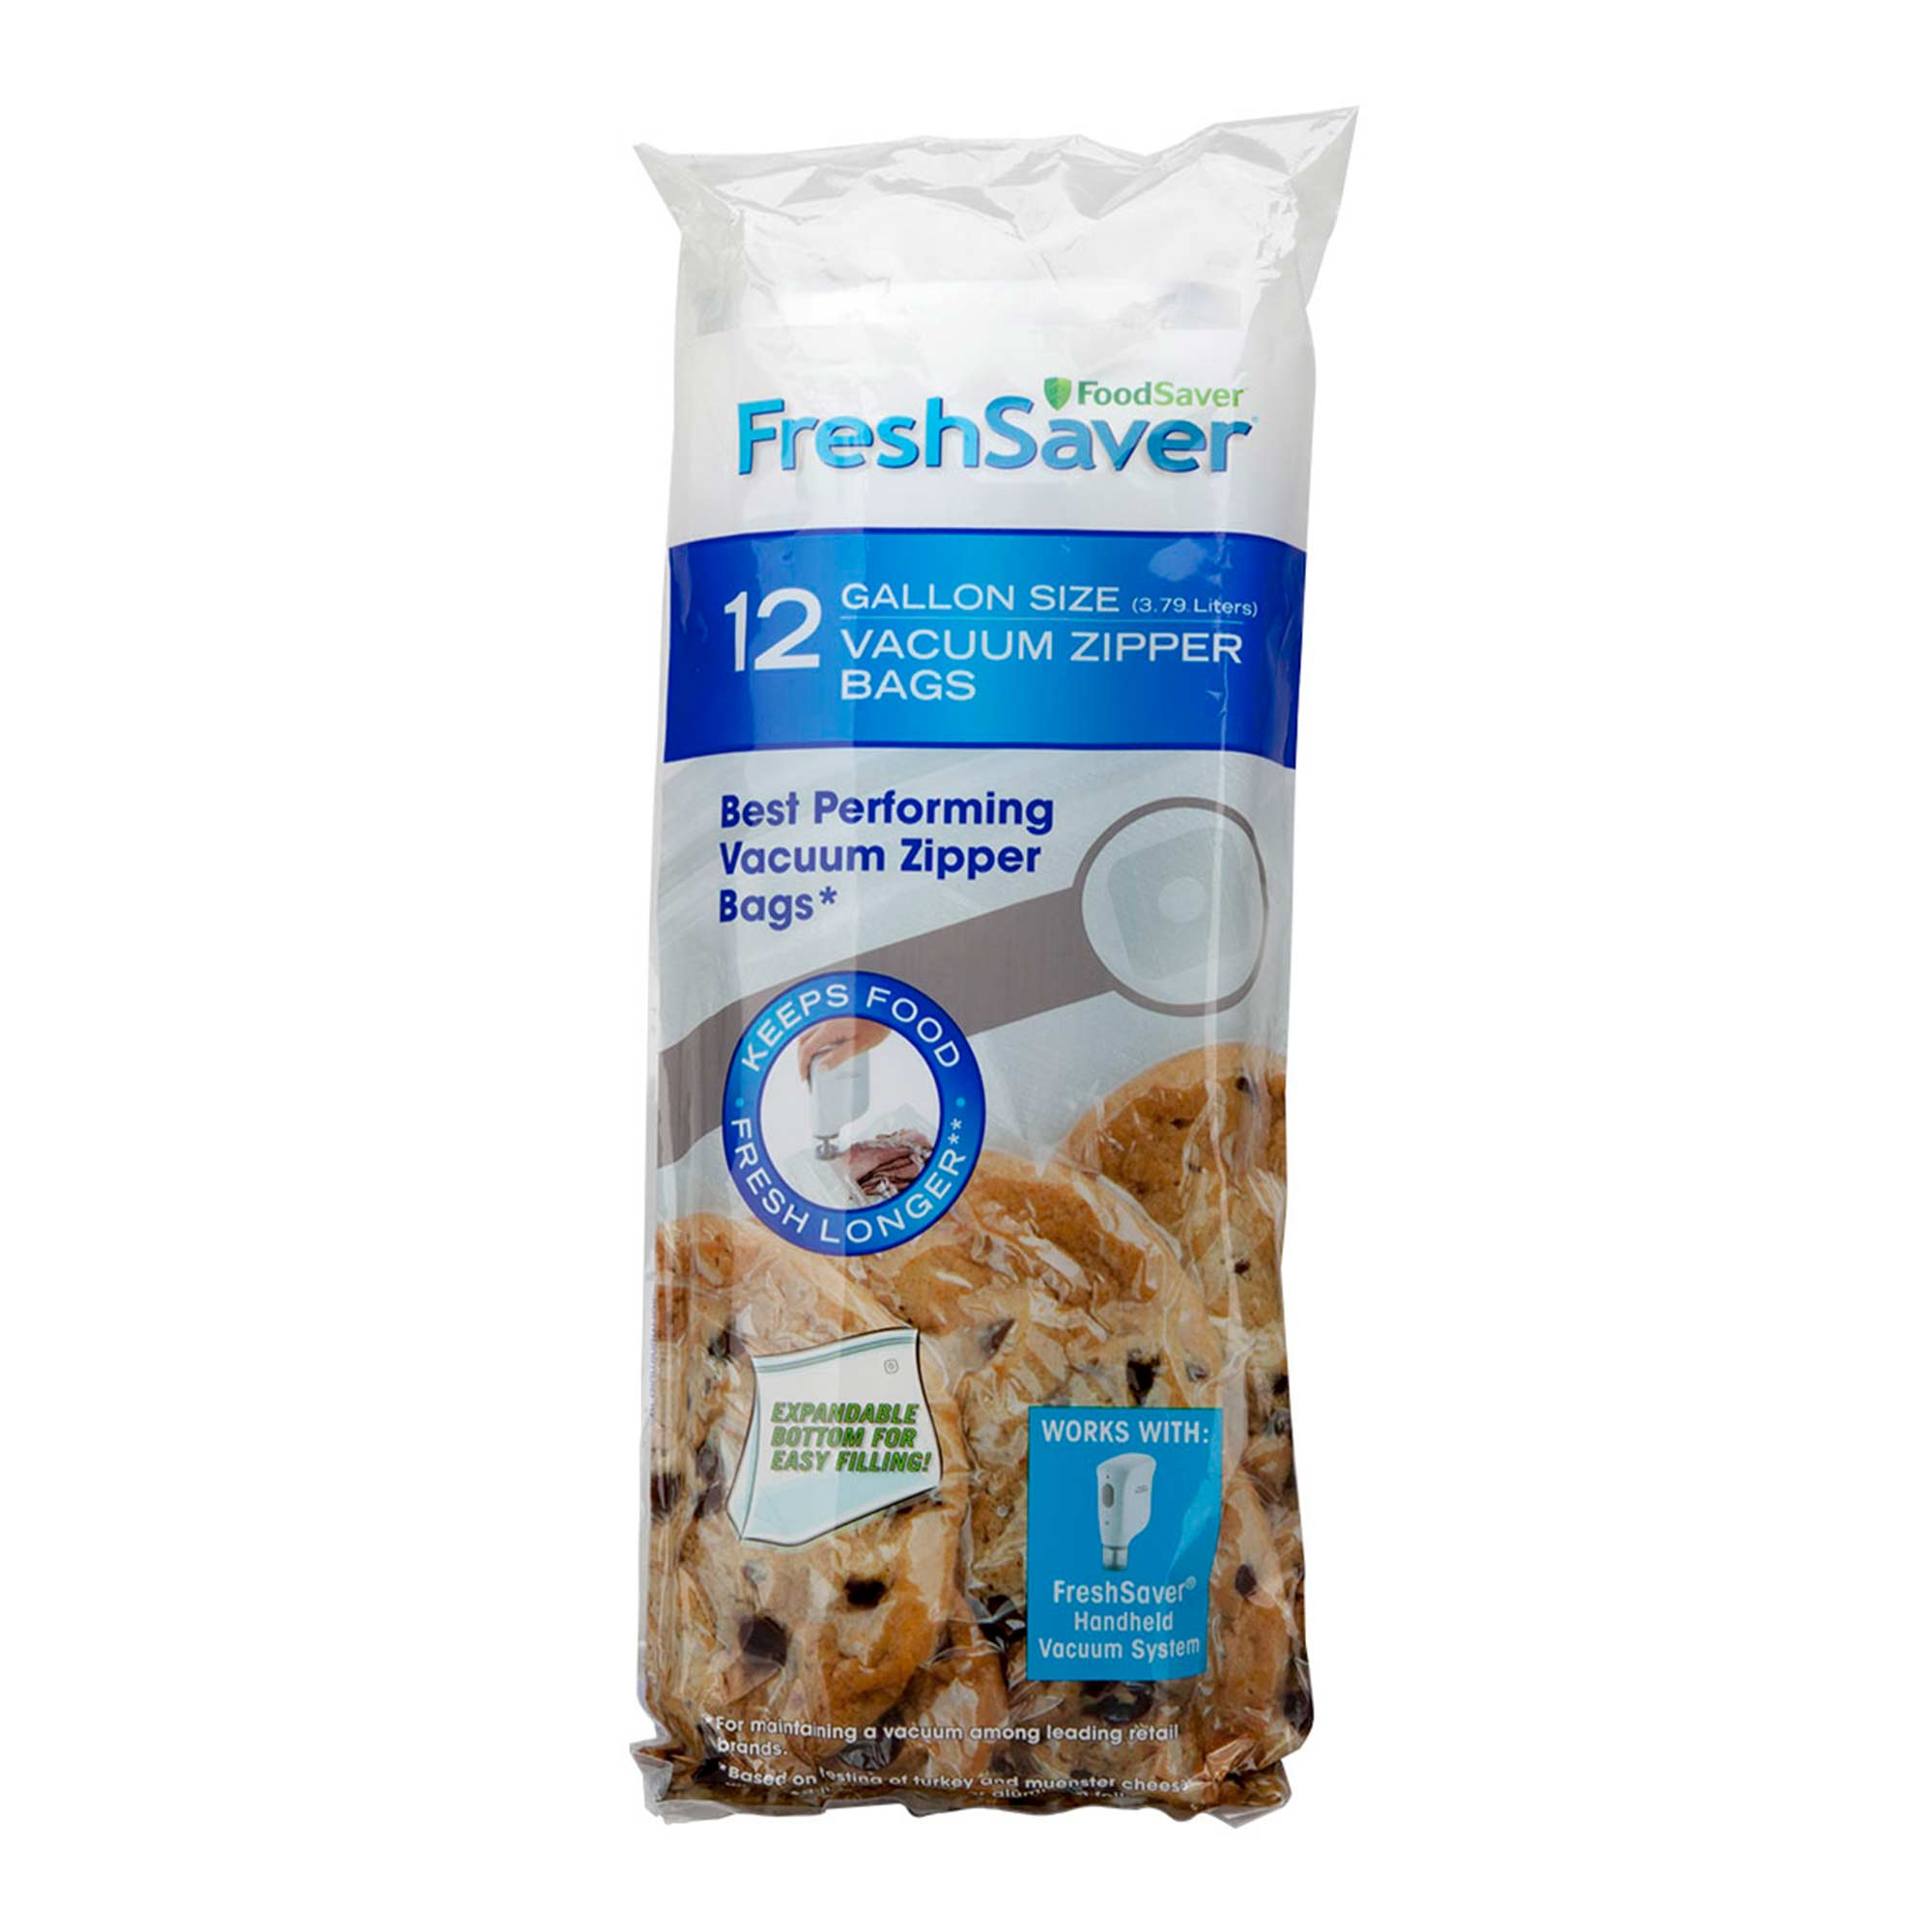 FoodSaver FreshSaver 1-Gallon Vacuum Zipper Bags (12 Count)